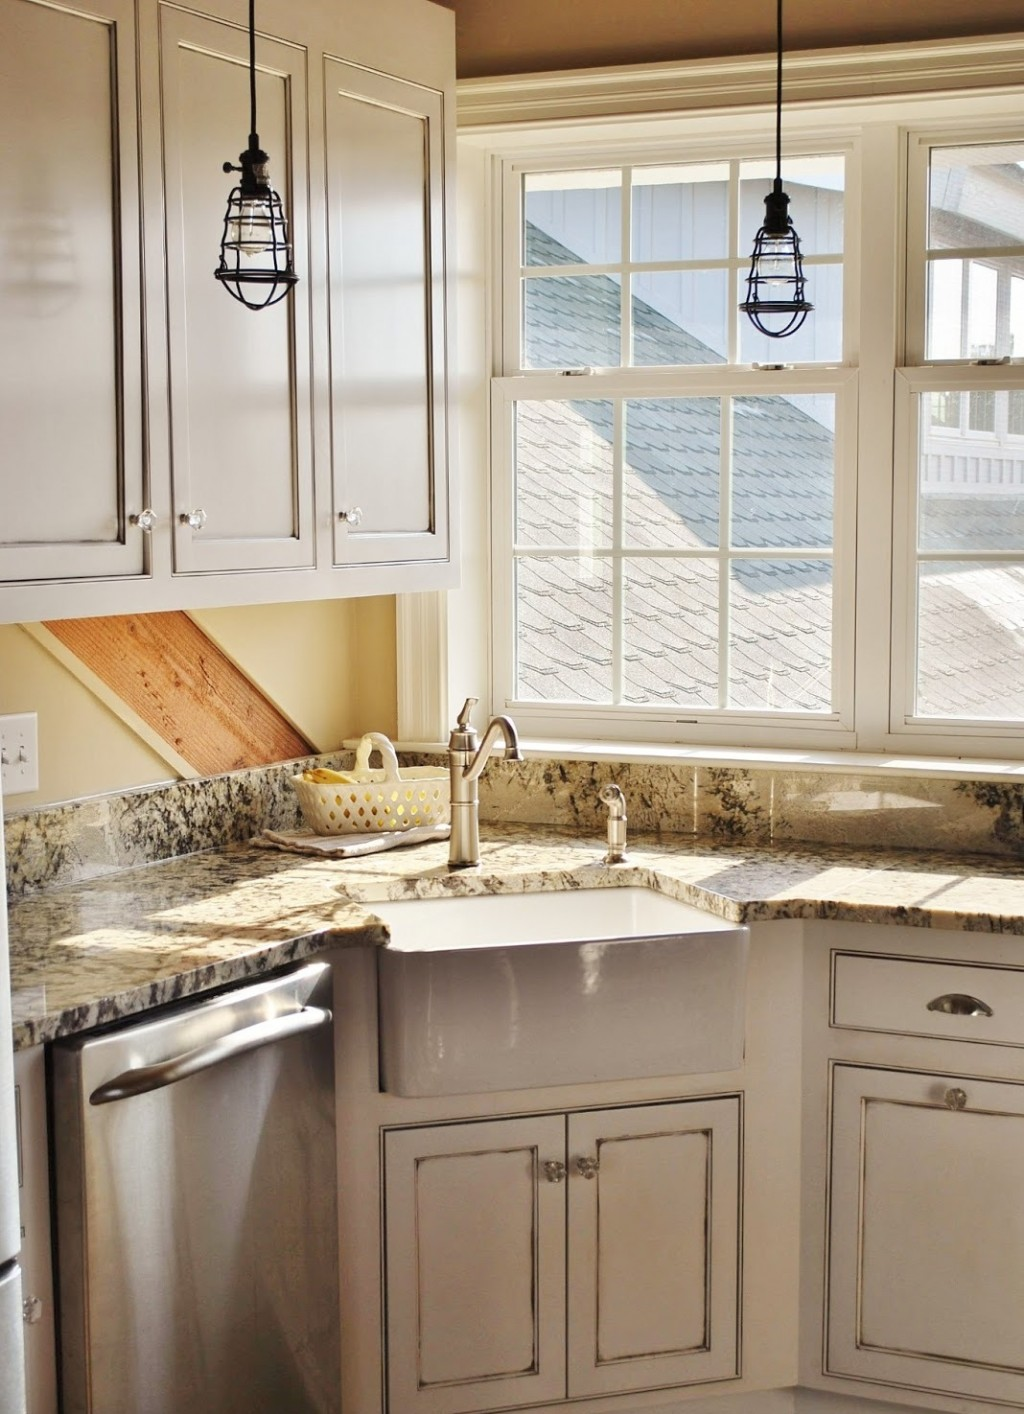 Advantages and disadvantages of corner kitchen sinks ...